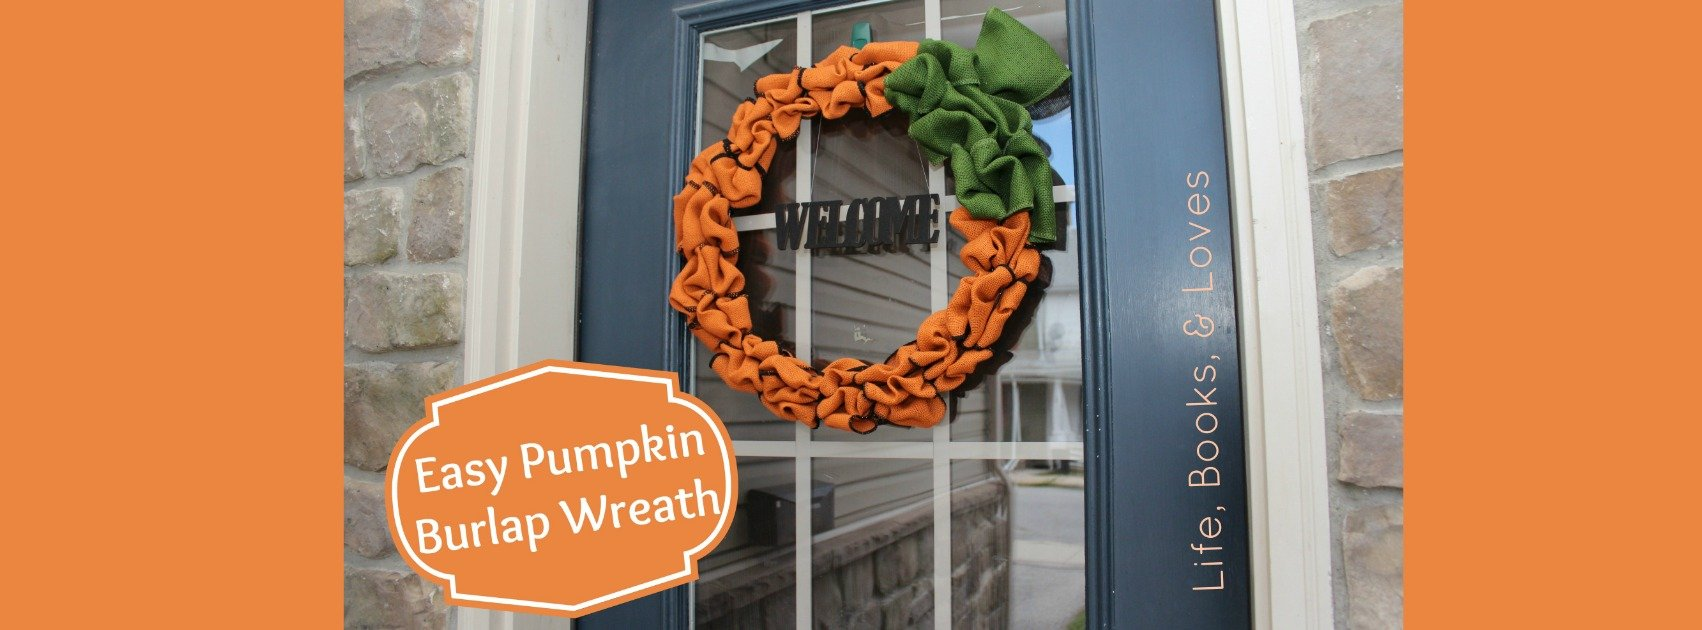 How To: Easy Pumpkin Burlap Wreath